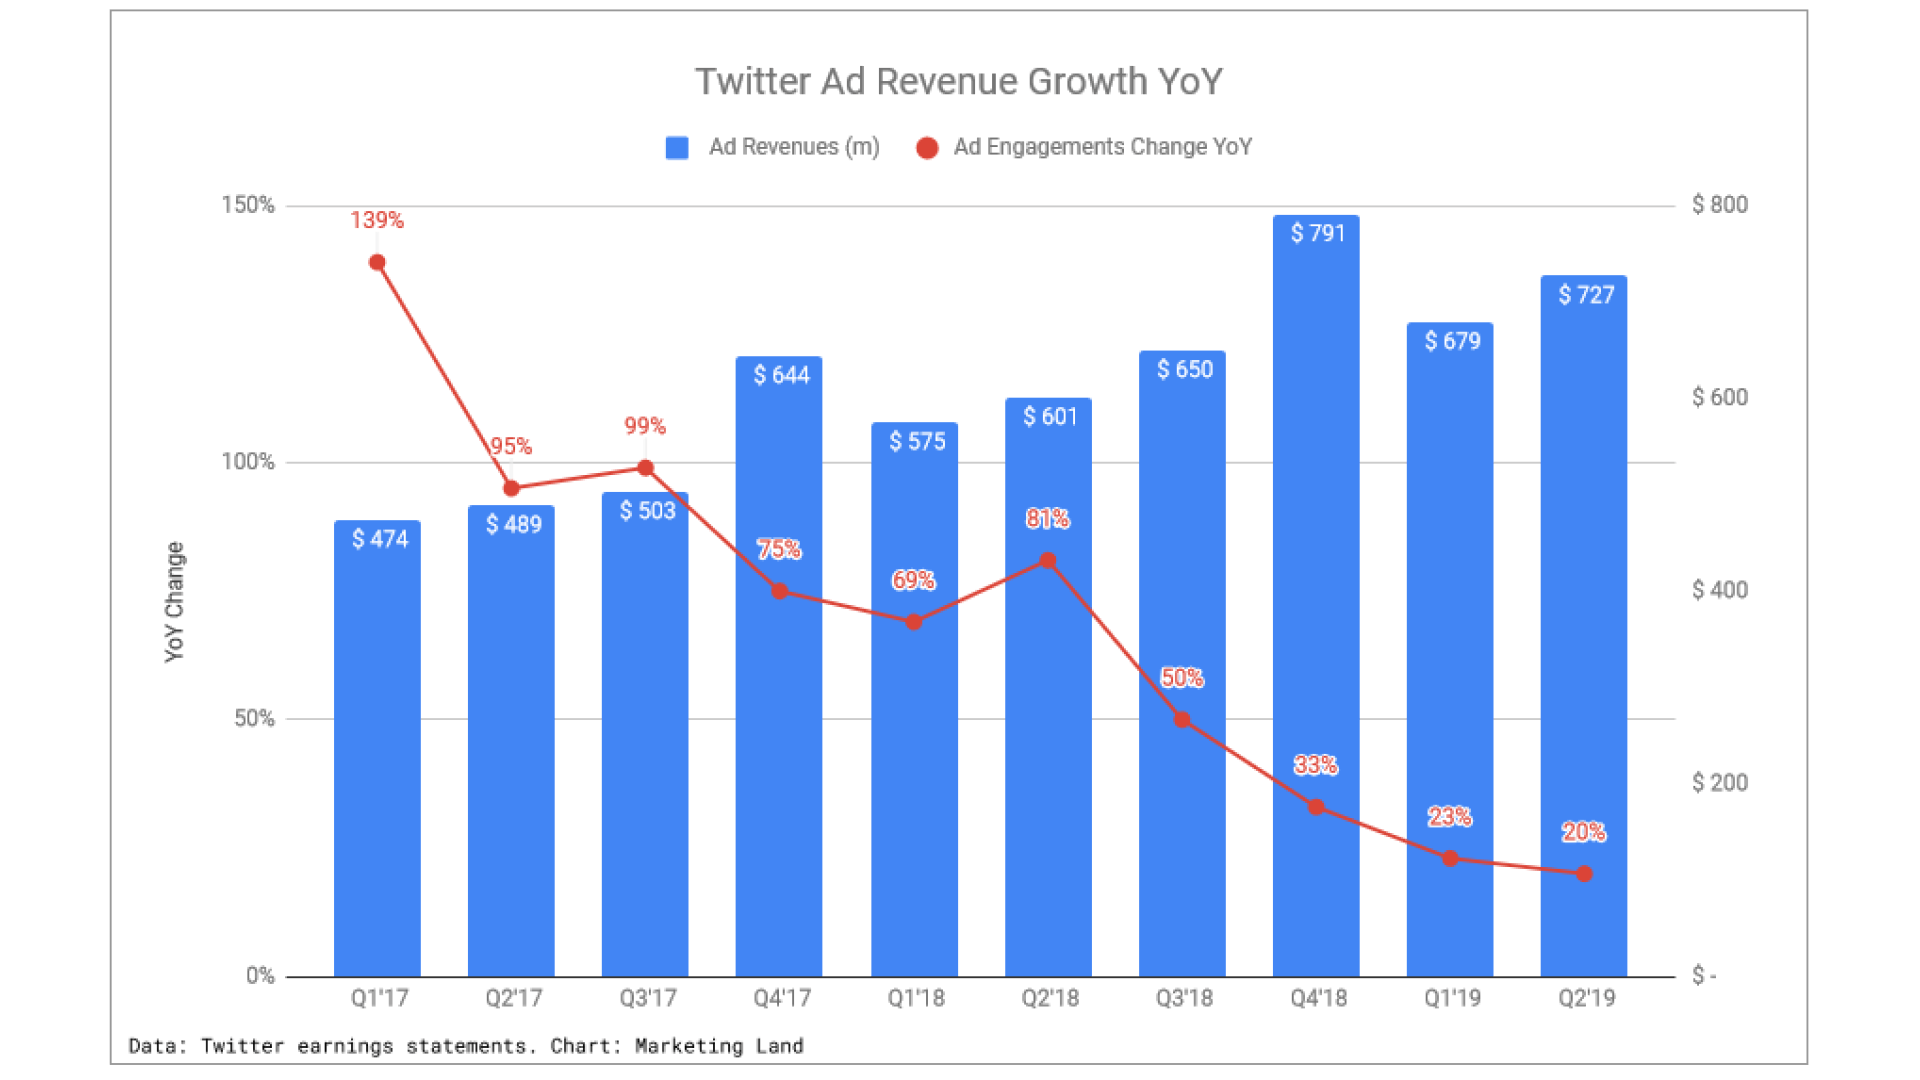 Twitter ad revenue up 21% in Q2, ad engagement growth continues to slow